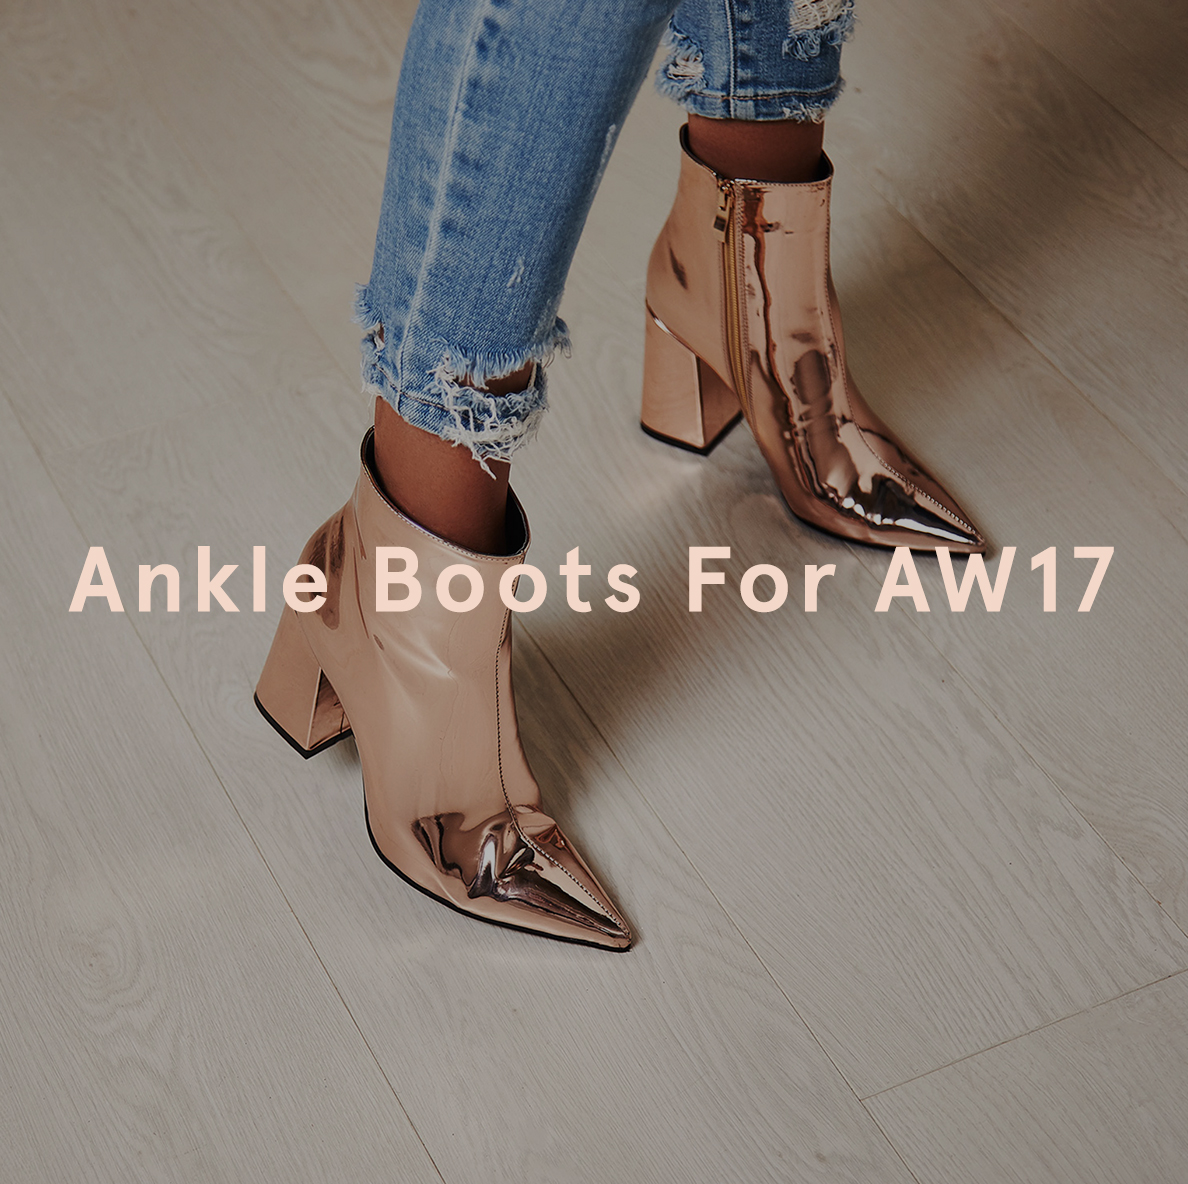 AW17 Ankle Boots